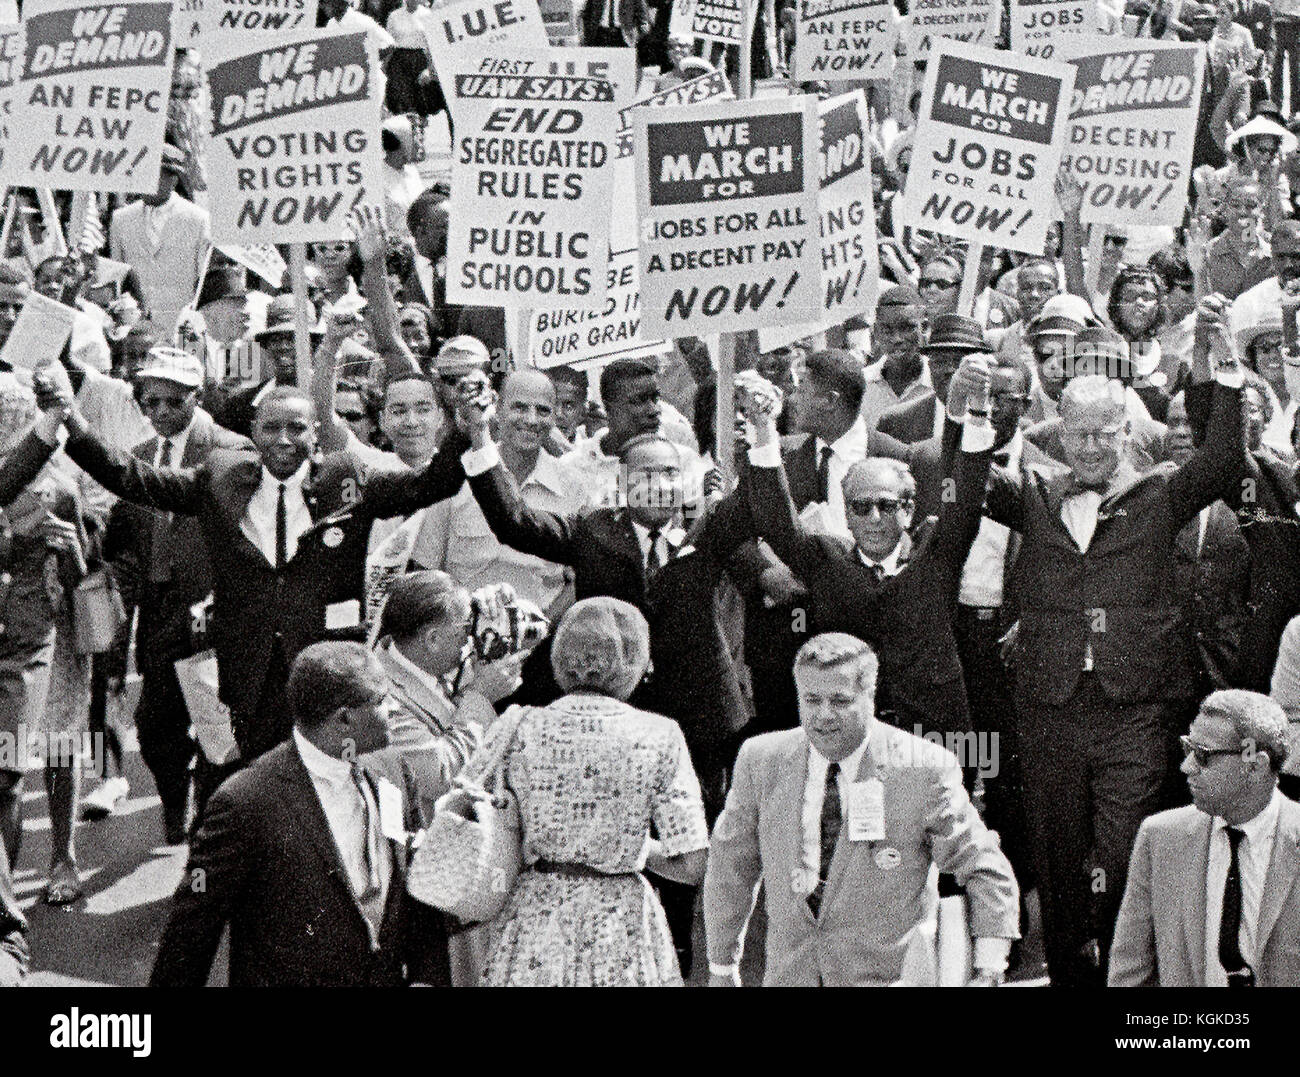 Reverend Dr Martin Luther King Jr And Other Civil Rights Leaders